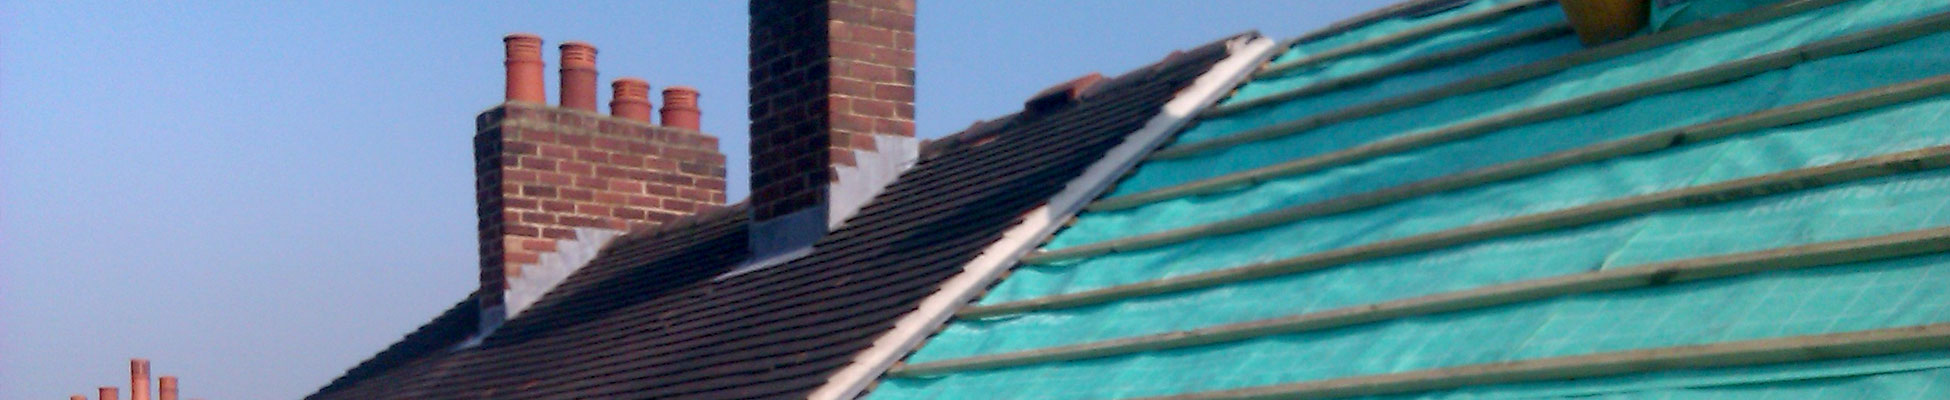 Pitched Roof Header